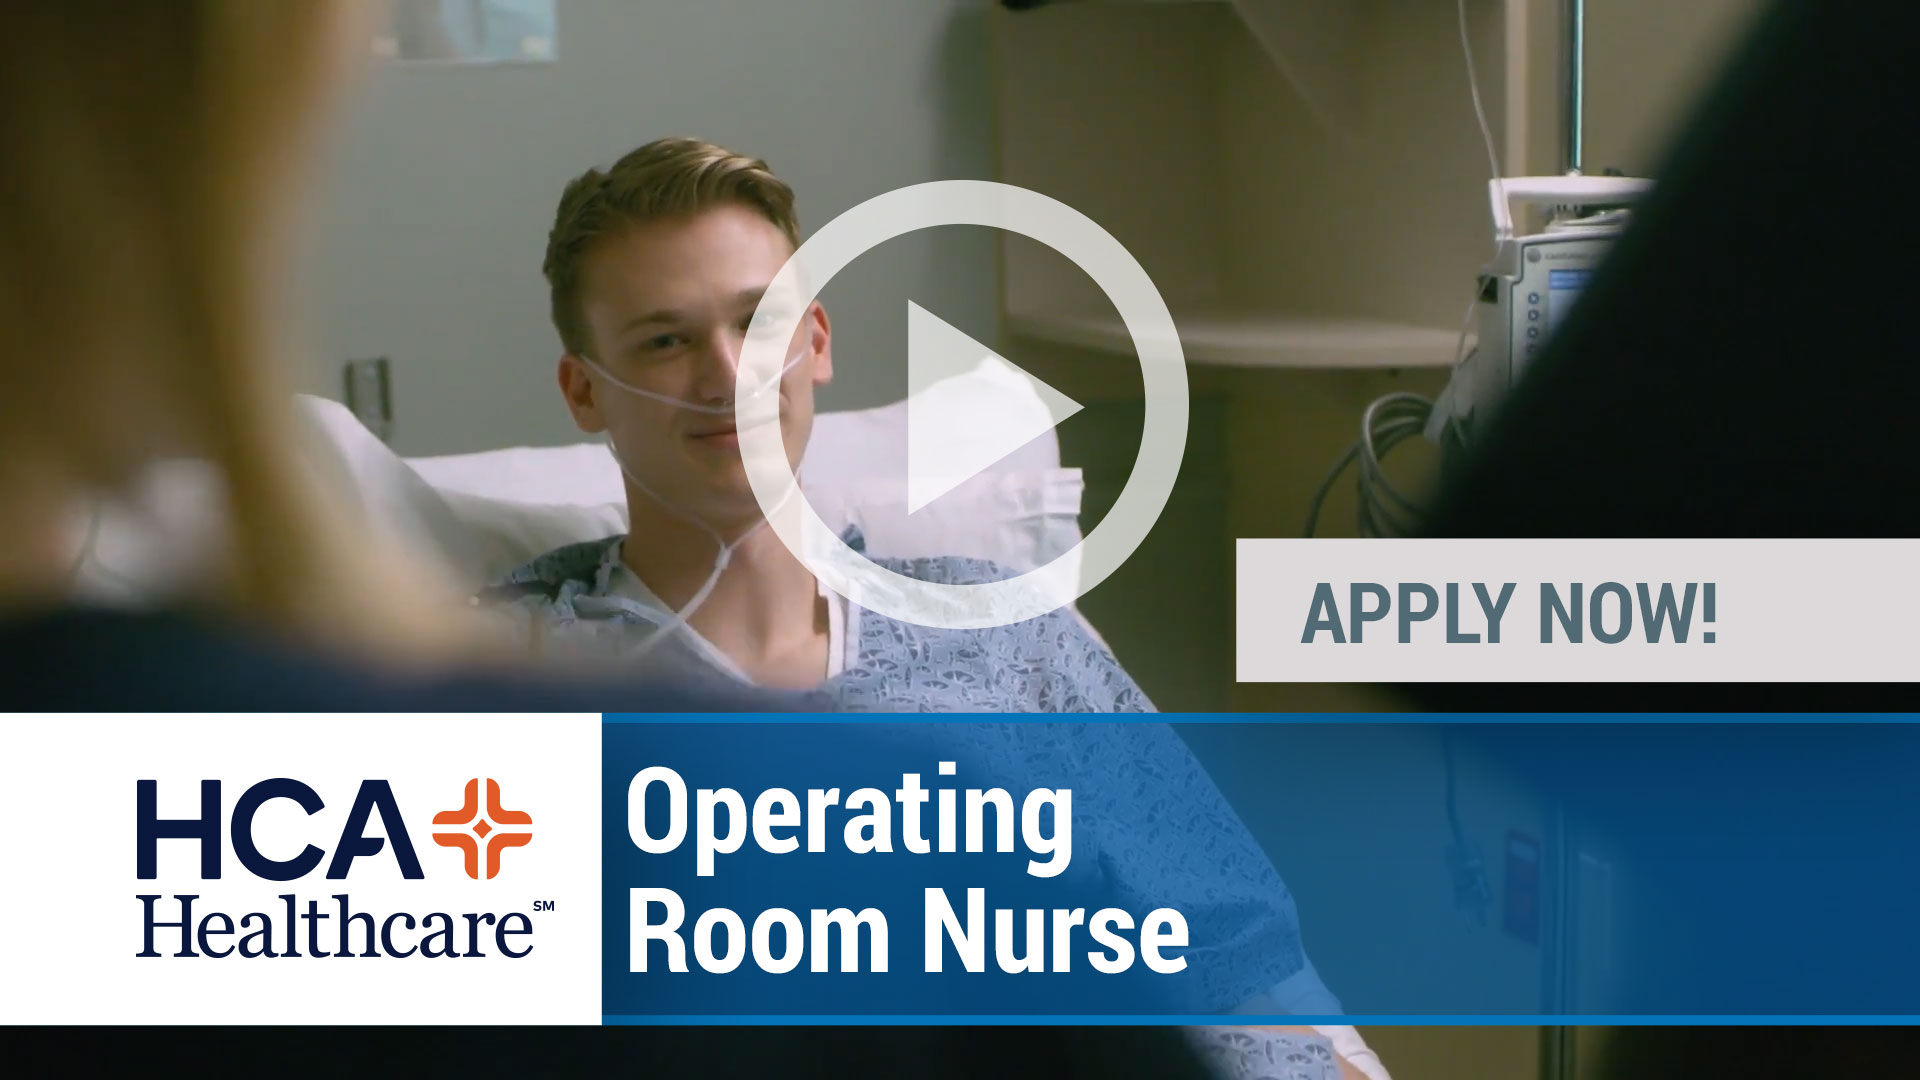 Watch our careers video for available job opening Operating Room Nurse in Snellville, Georgia